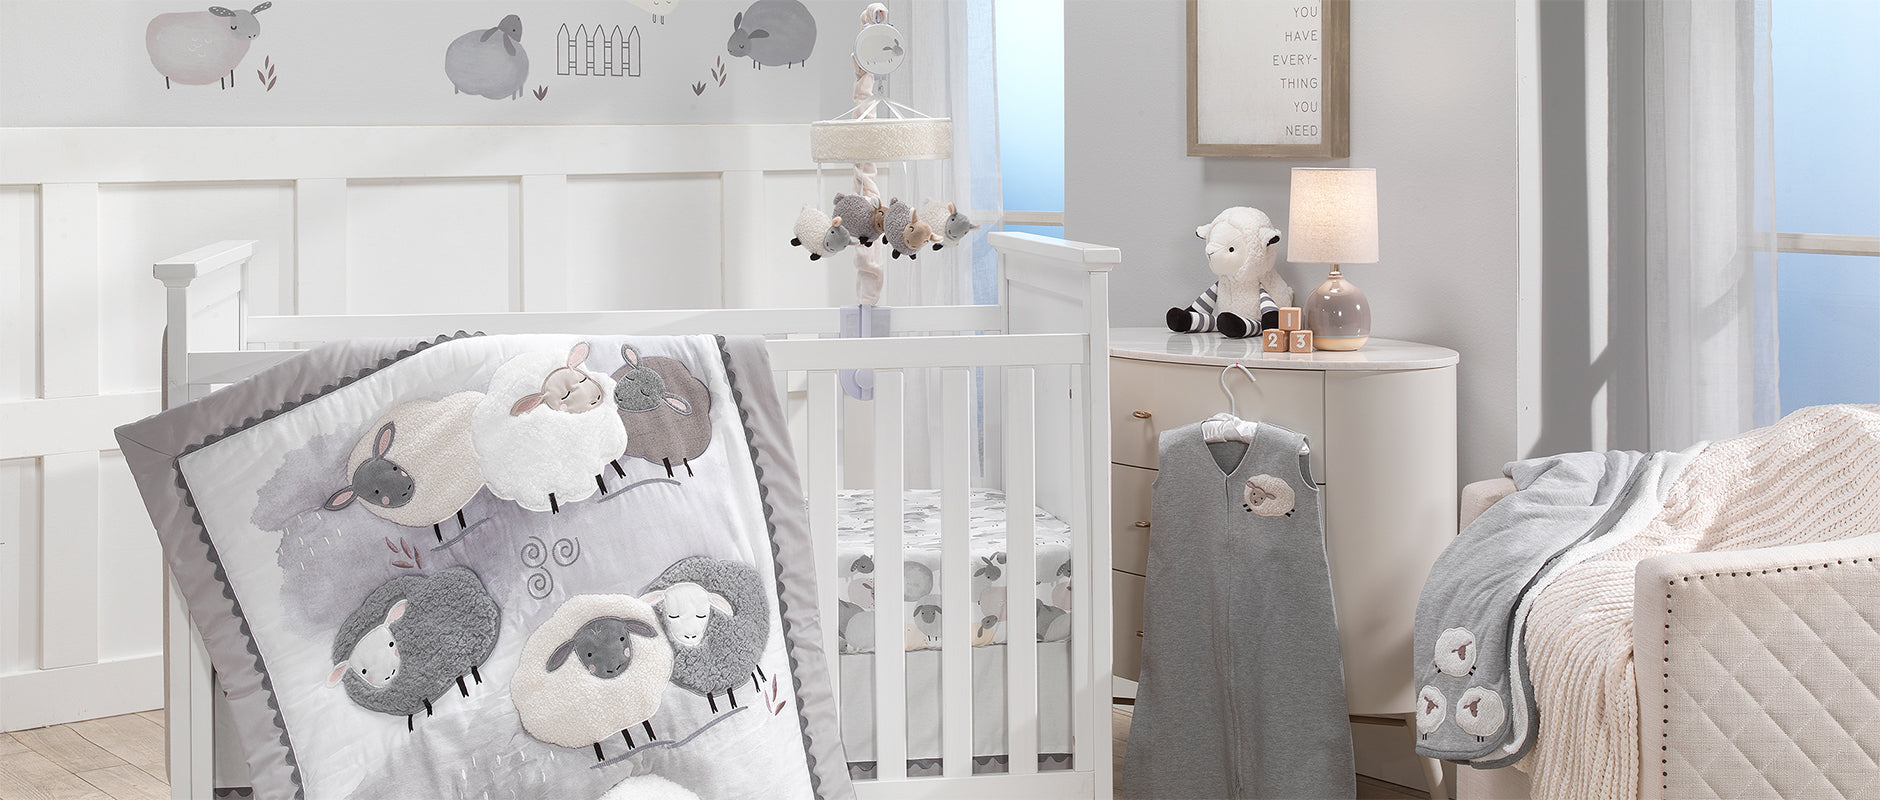 Sleepy Sheep Baby Crib Bedding